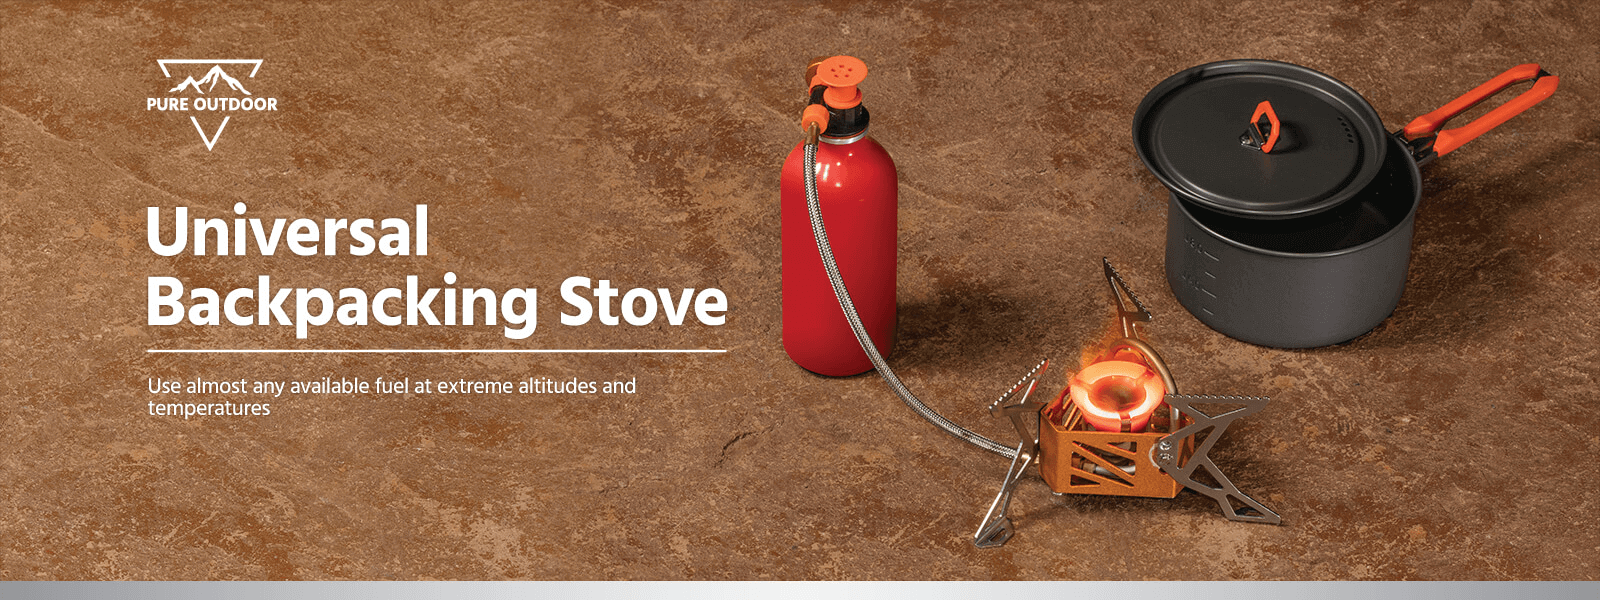 Pure Outdoor Universal Backpacking Stove